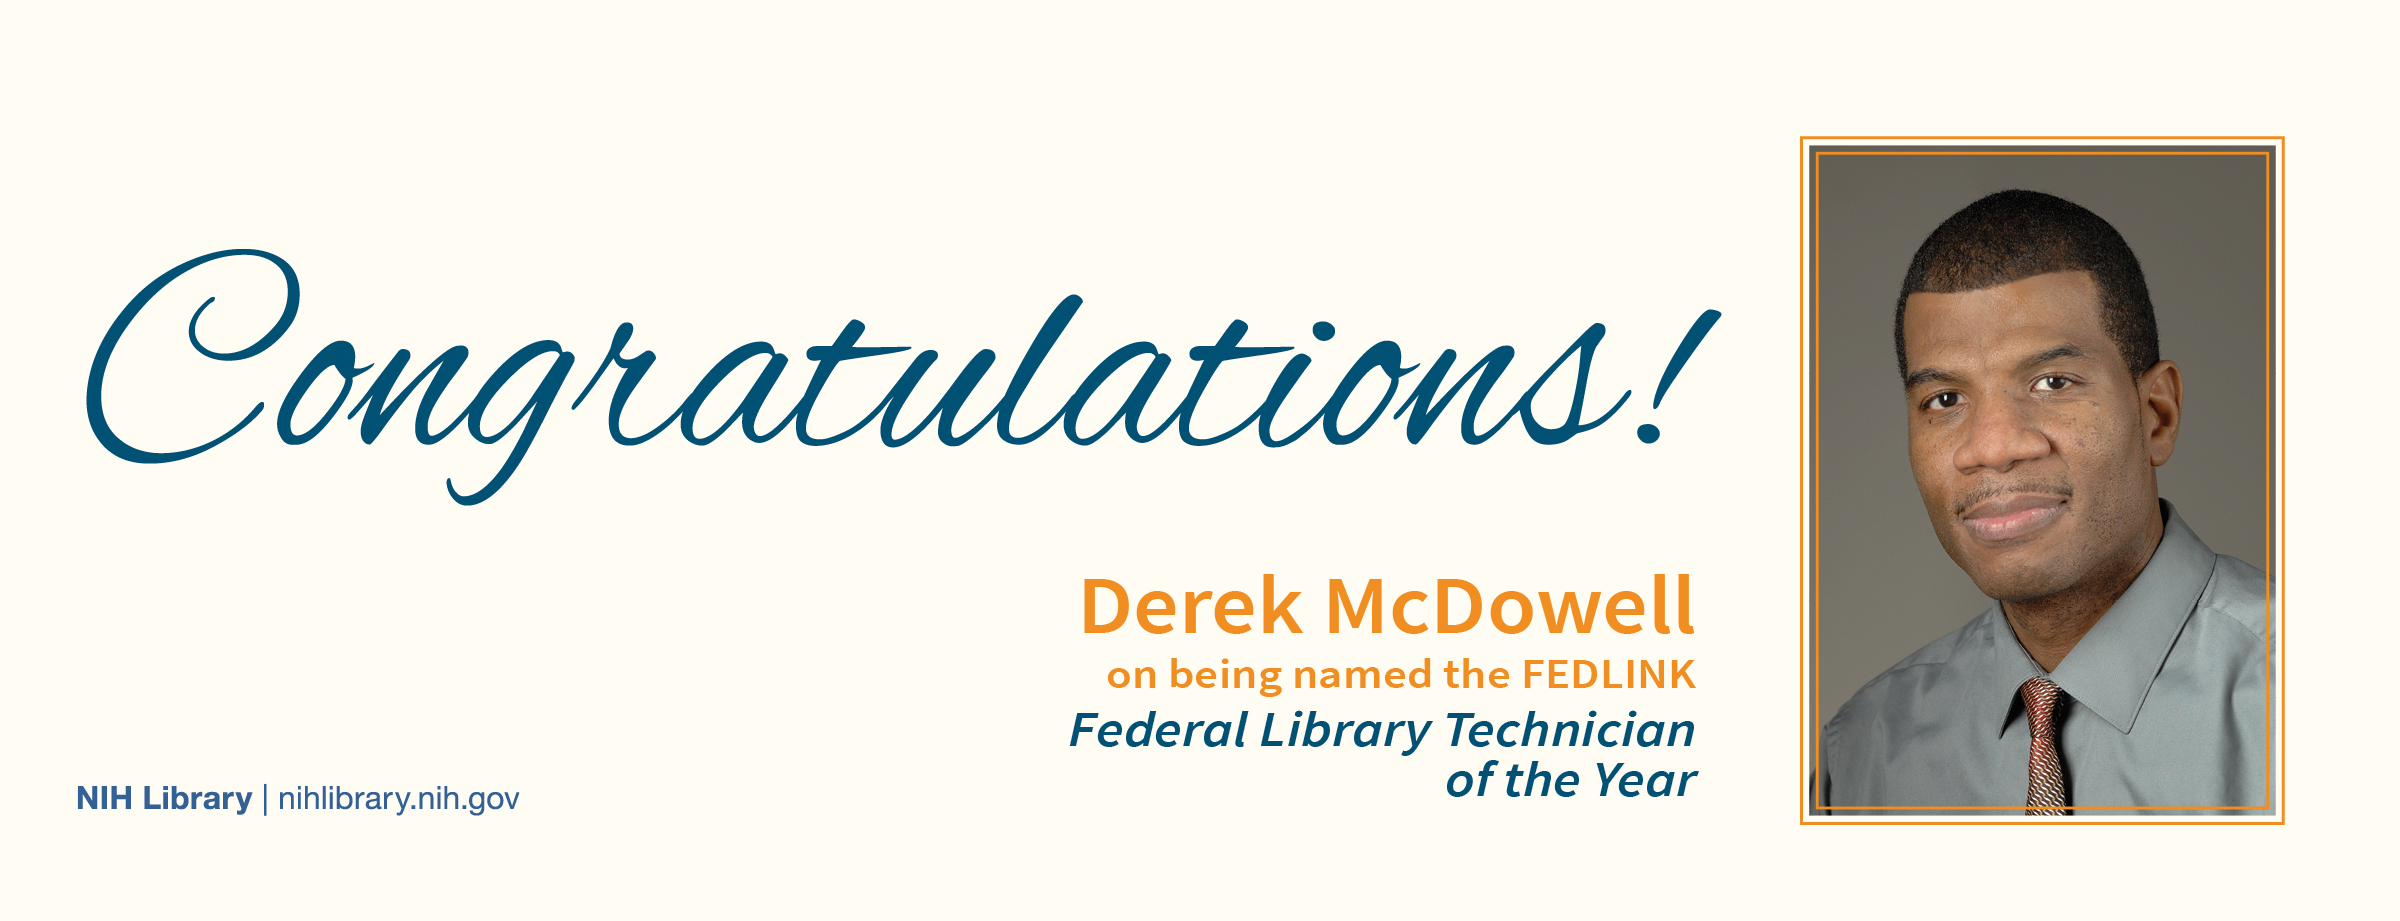 Congratulations Derek McDowell for being named the FEDLINK Federal Library Technician of the Year